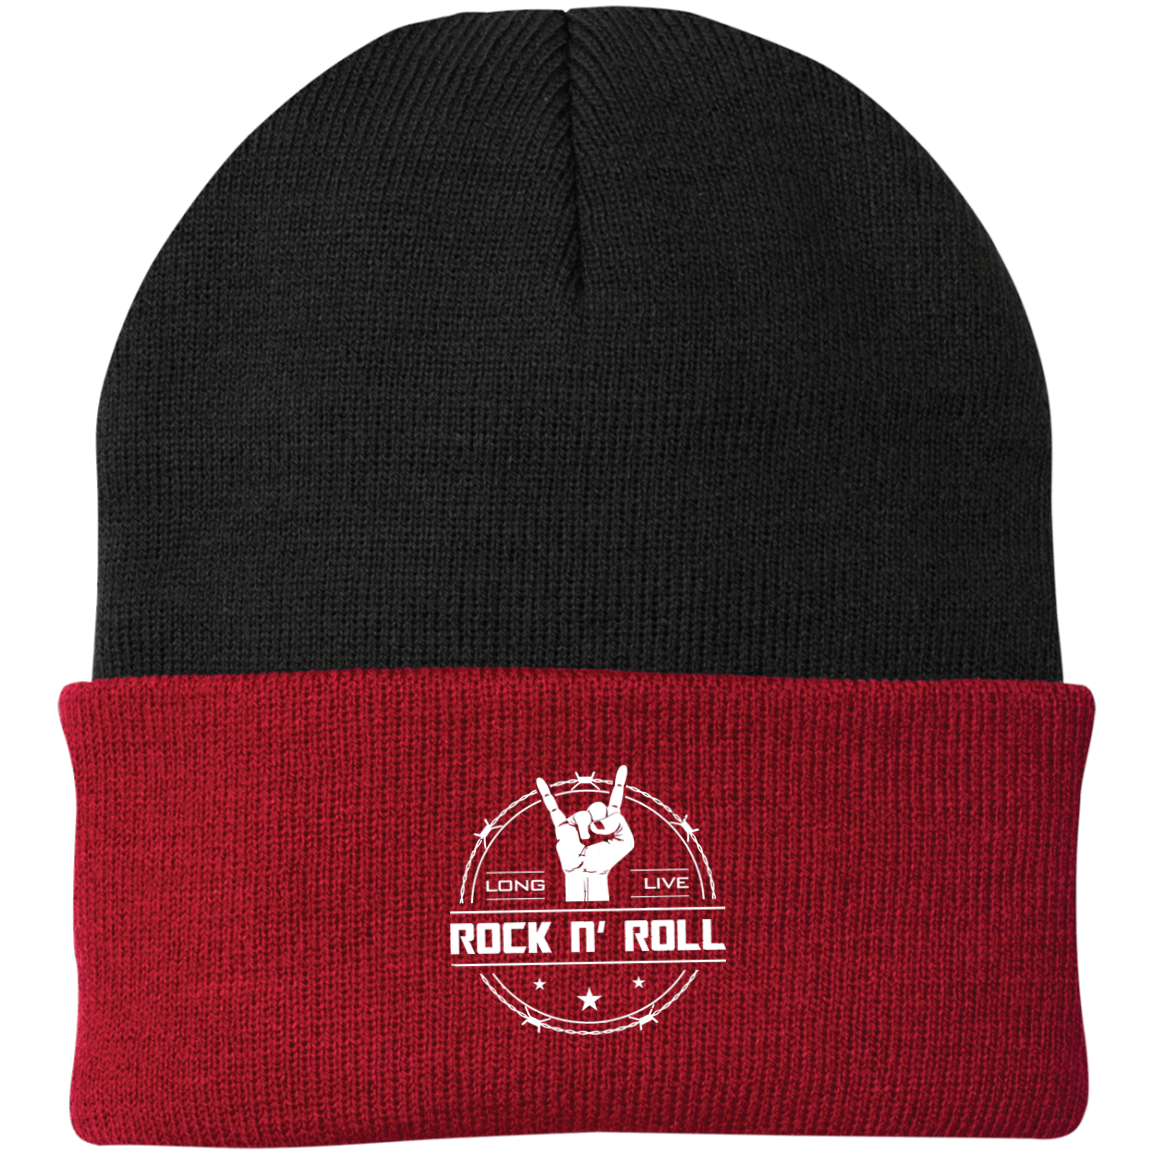 Midnight Long Live Rock And Roll Knit Cap